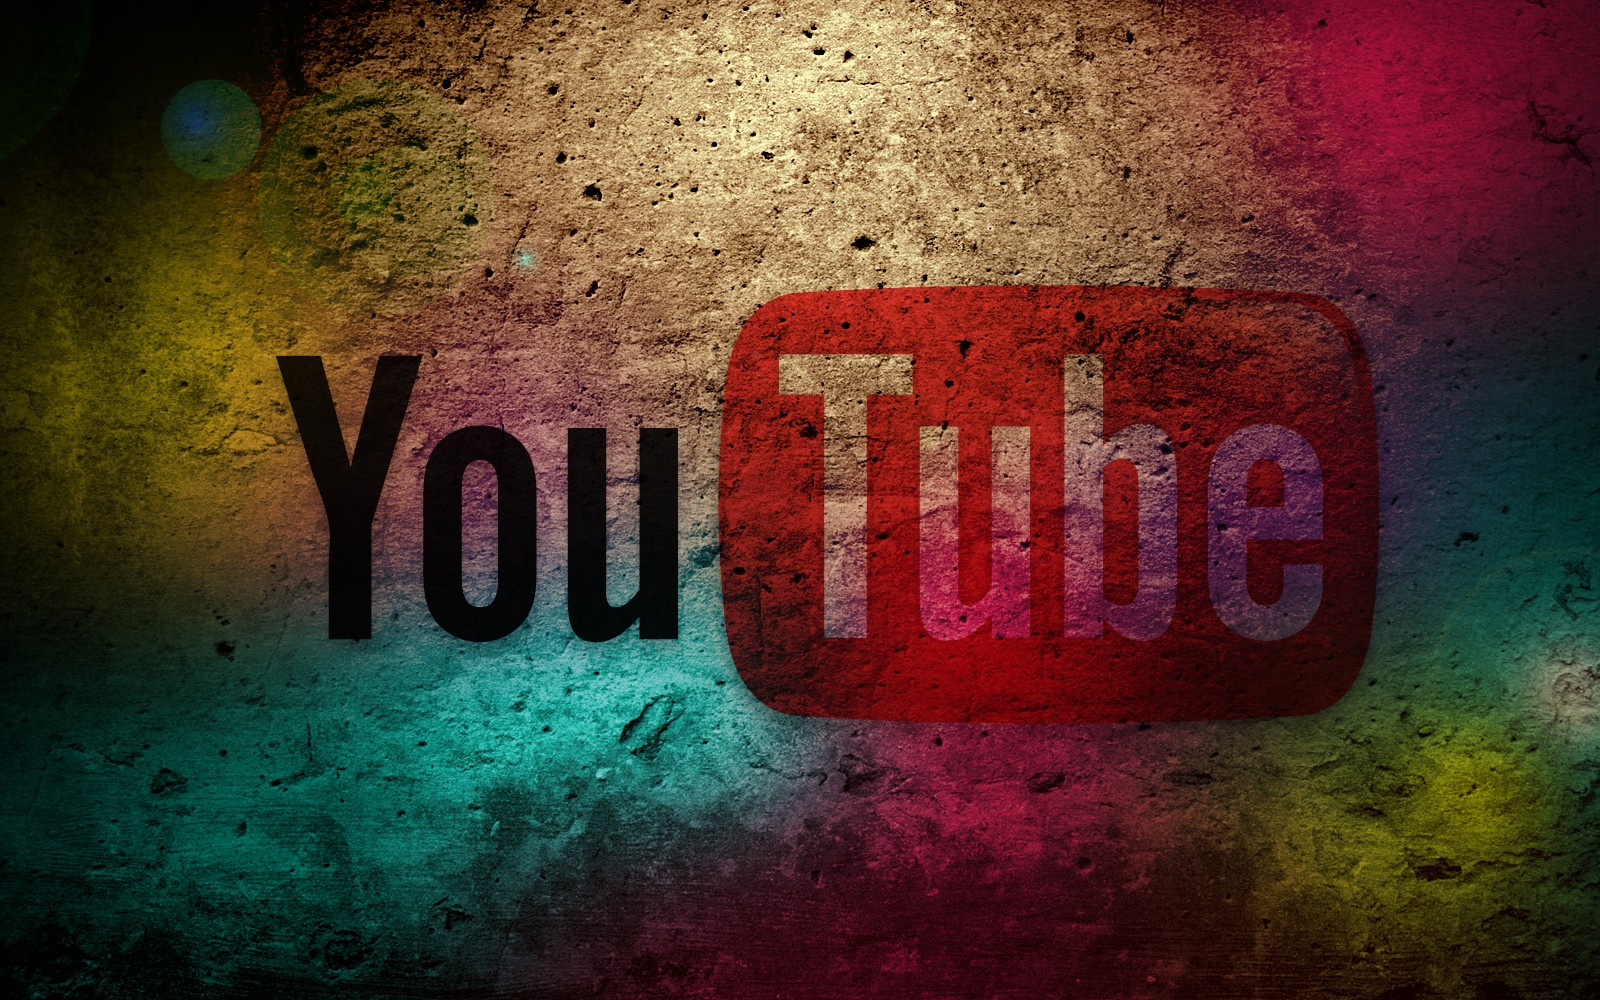 creative youtube cover page design within 24 hours